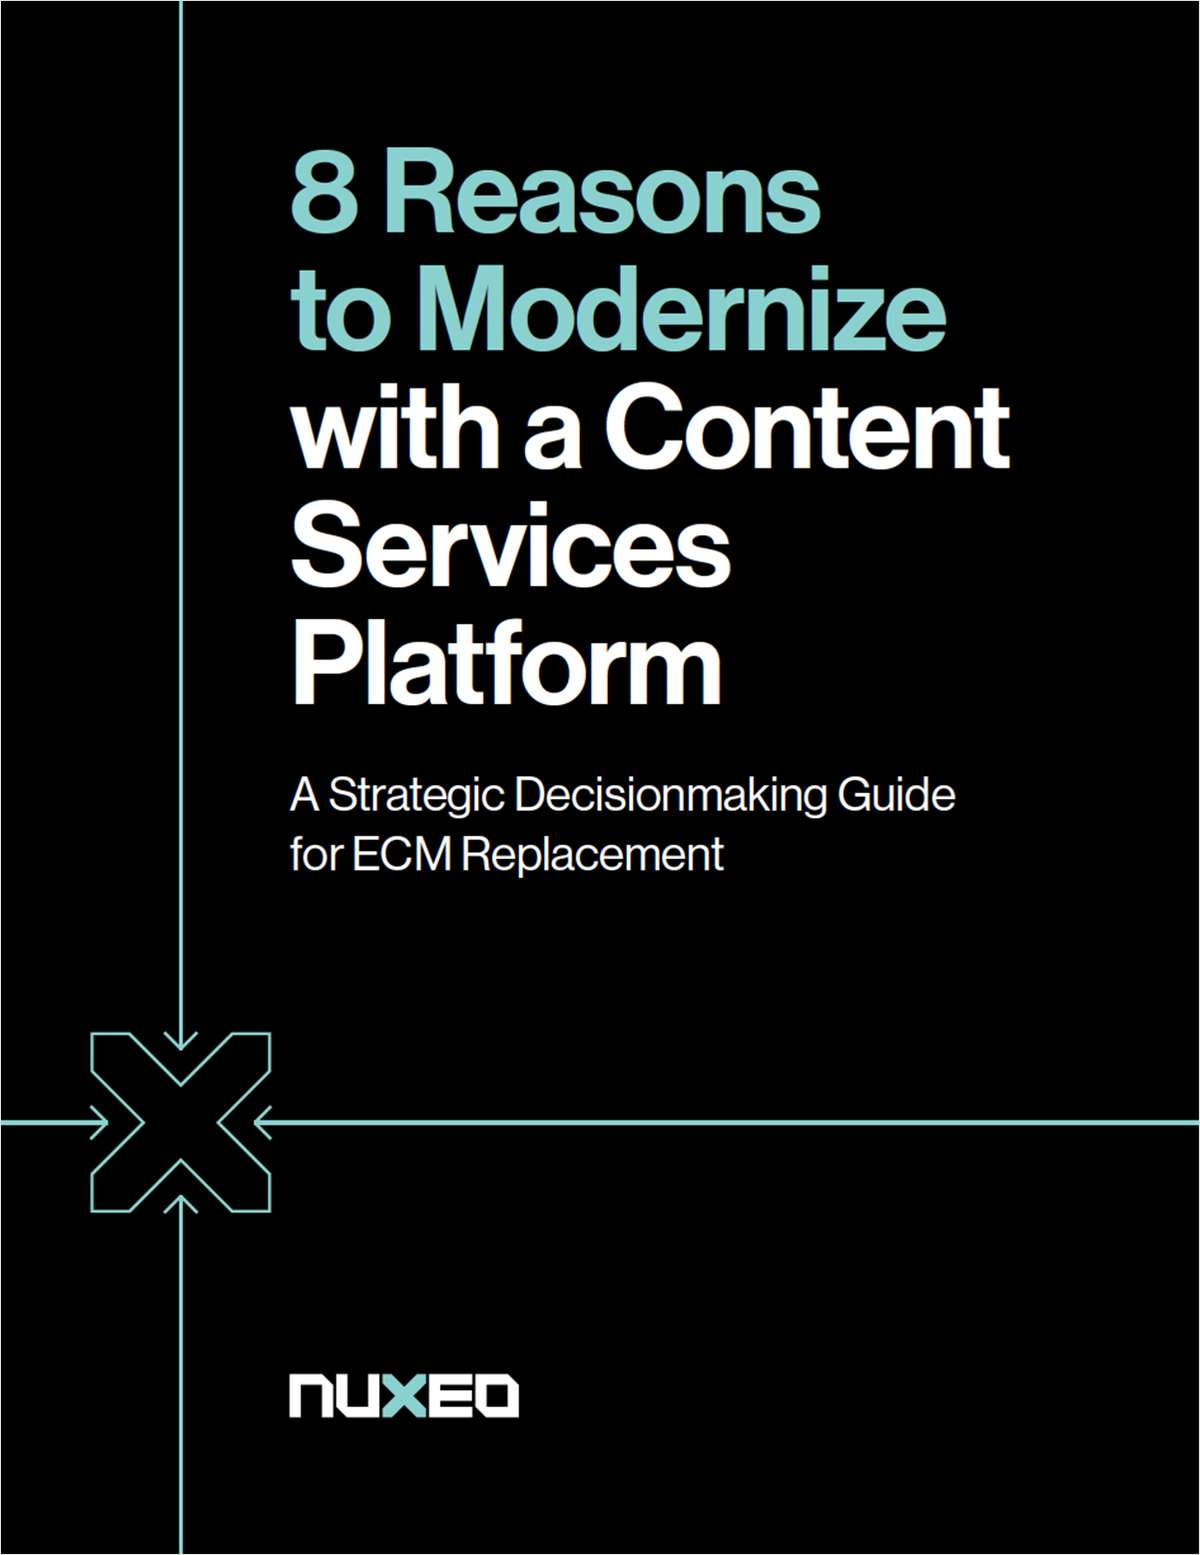 8 Reasons to Modernize with a Content Services Platform